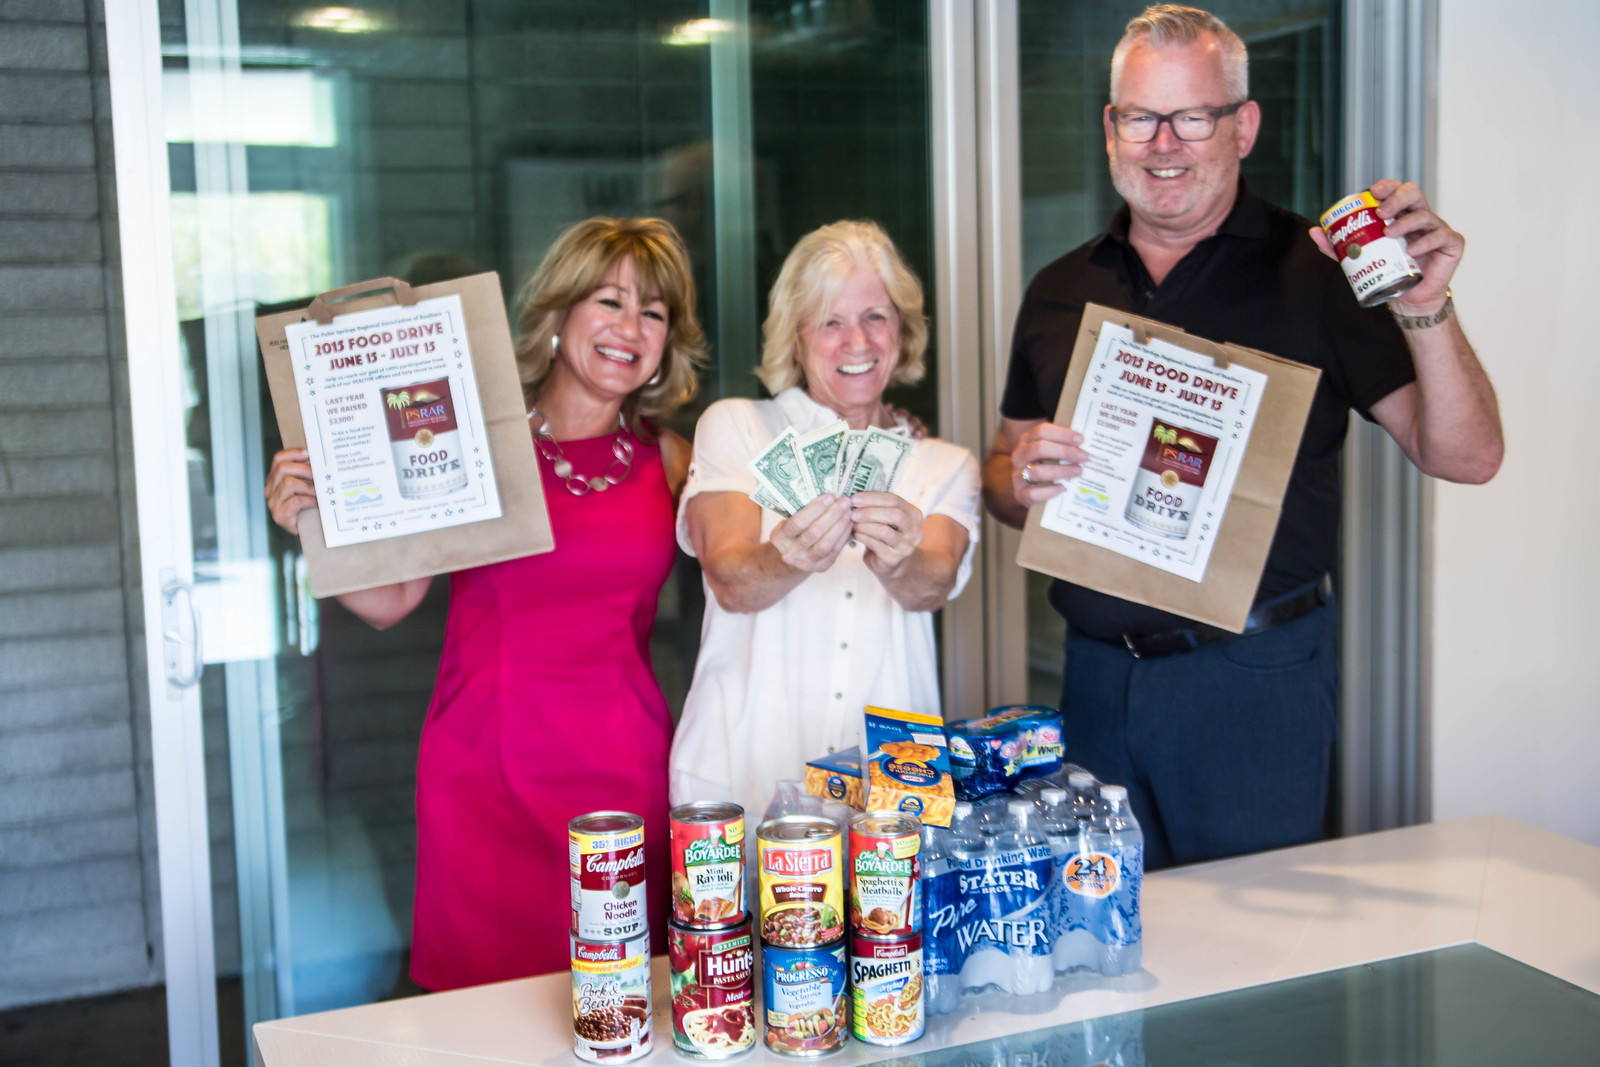 Members of the Palm Springs Regional Association of Realtors Food Drive Committee: Debra Comer of Acme House Co., Melinda